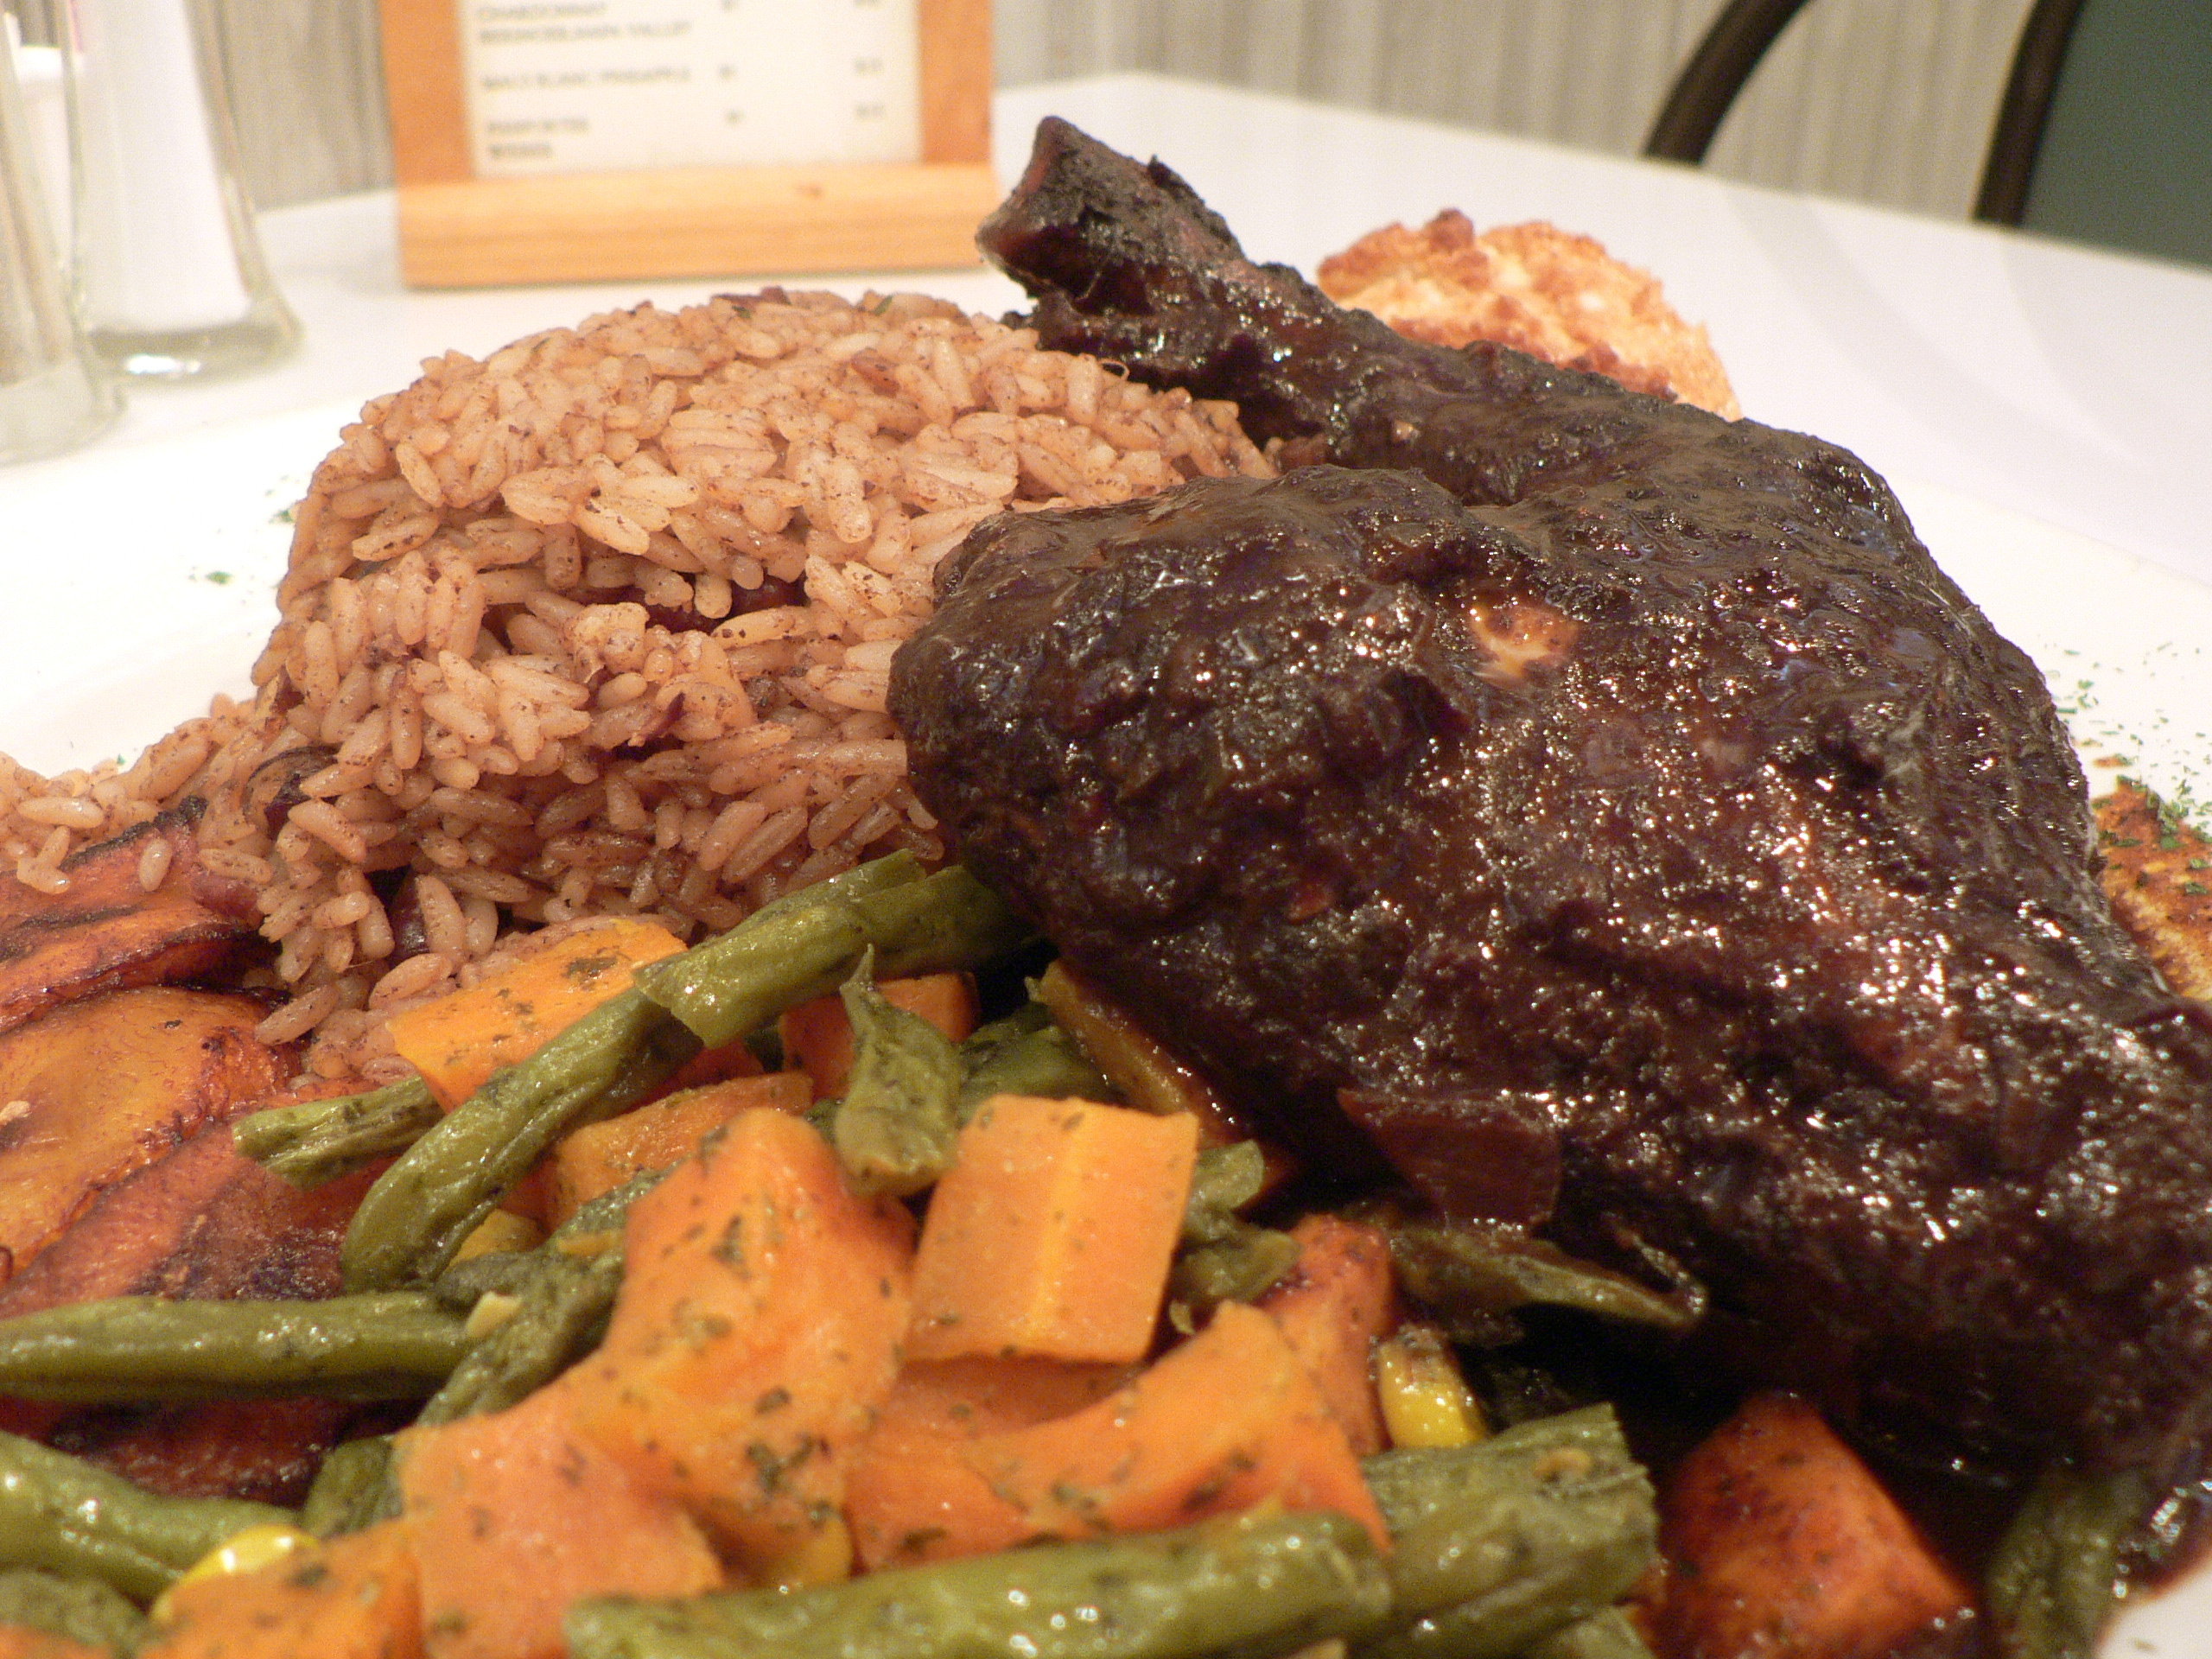 File:Jerk chicken plate.jpg - Wikipedia